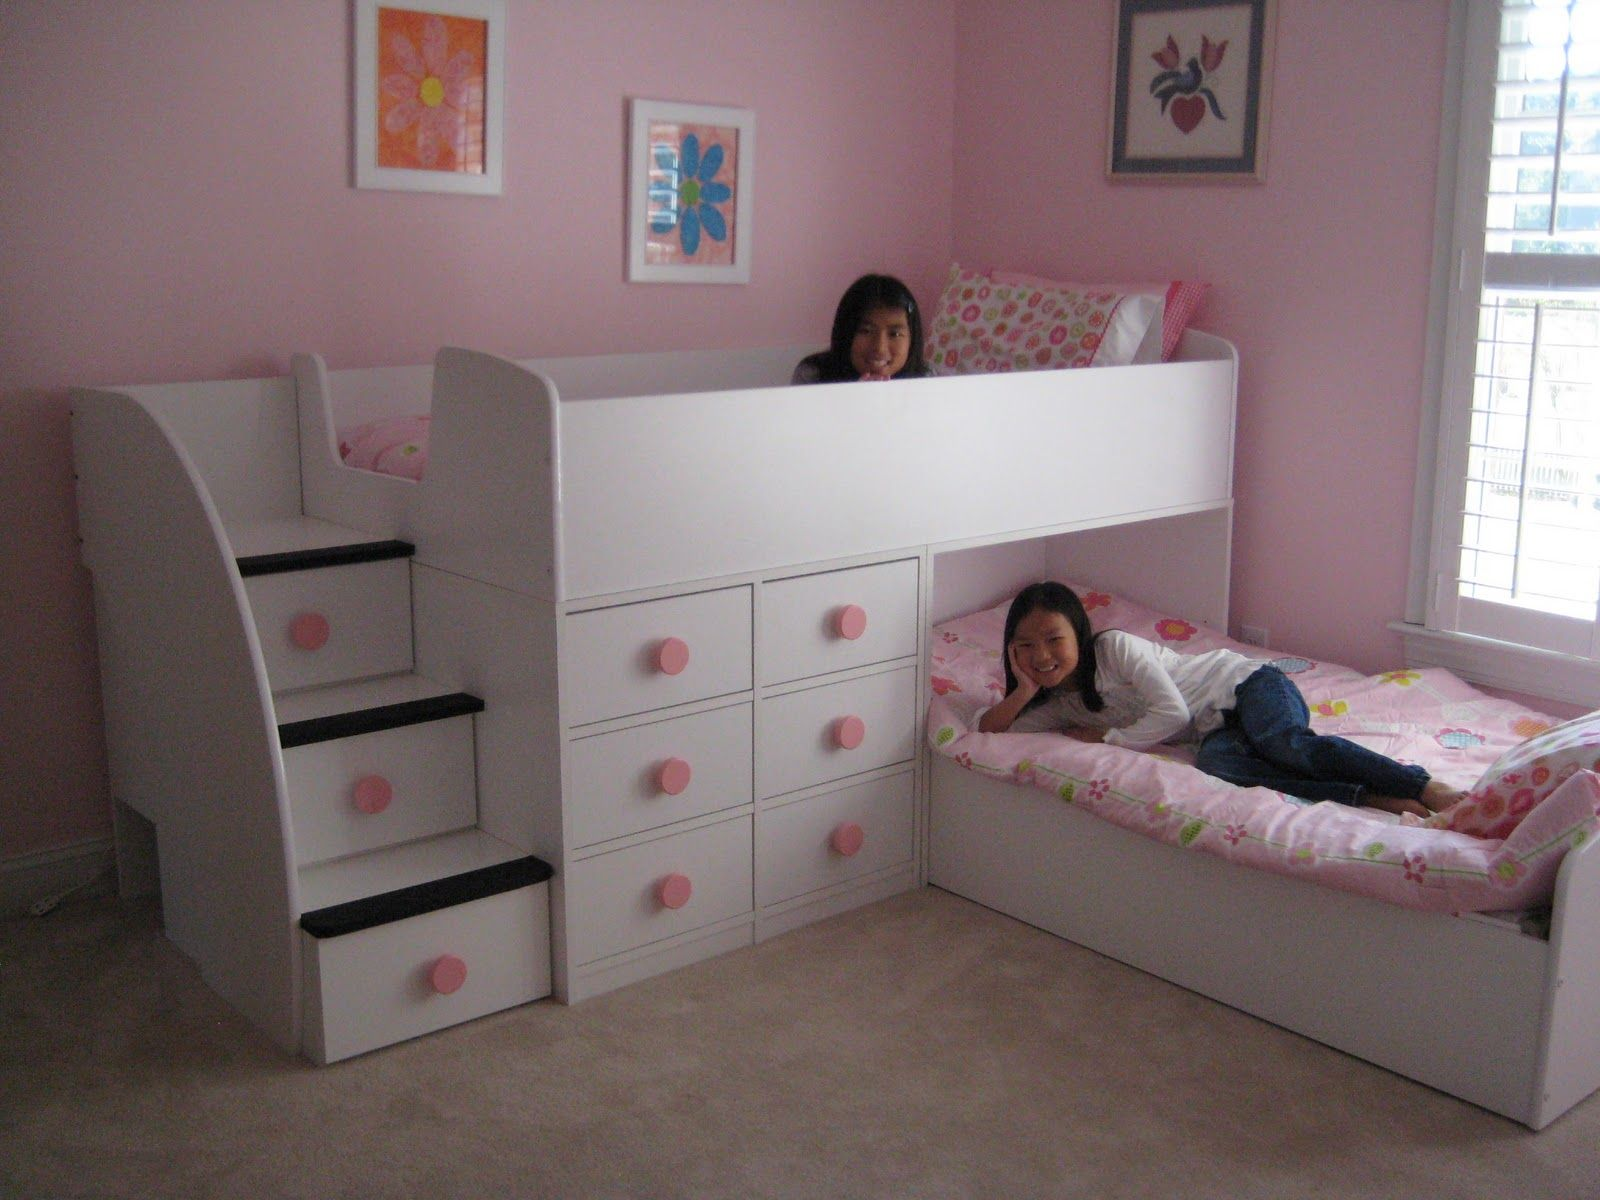 Bedroom ideas for girls with bunk beds - Cool Bunk Beds Room Already Stuffed A Really Cool Bunk Bed System